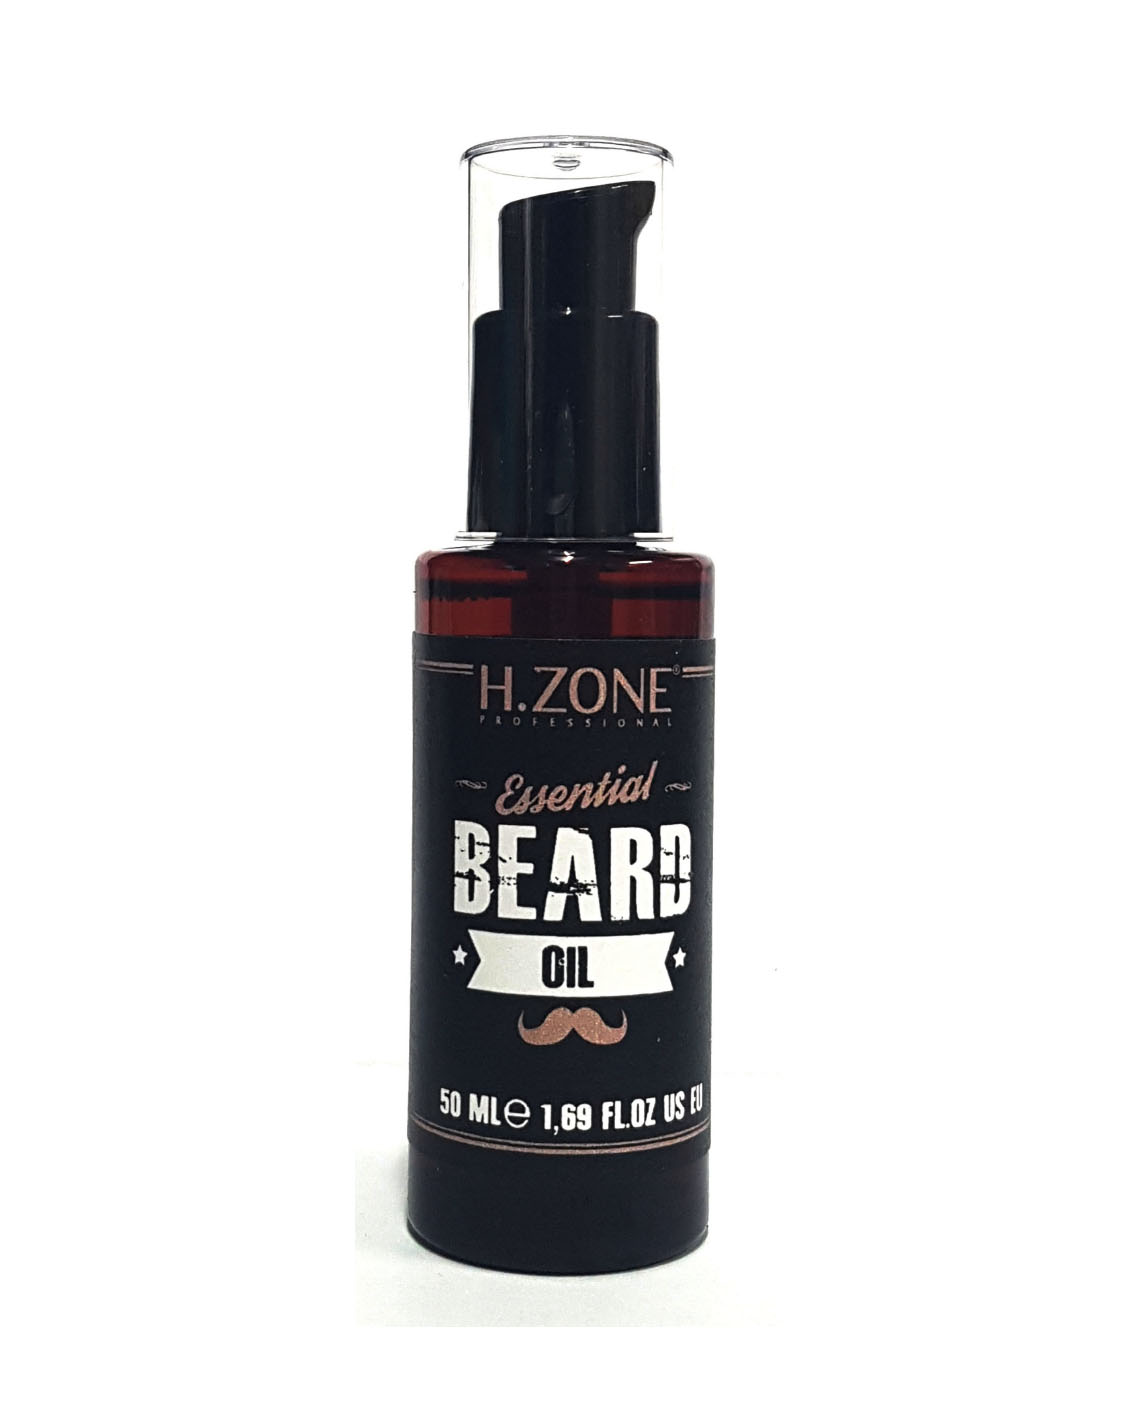 Hzone Essential Beard Oil 50ml